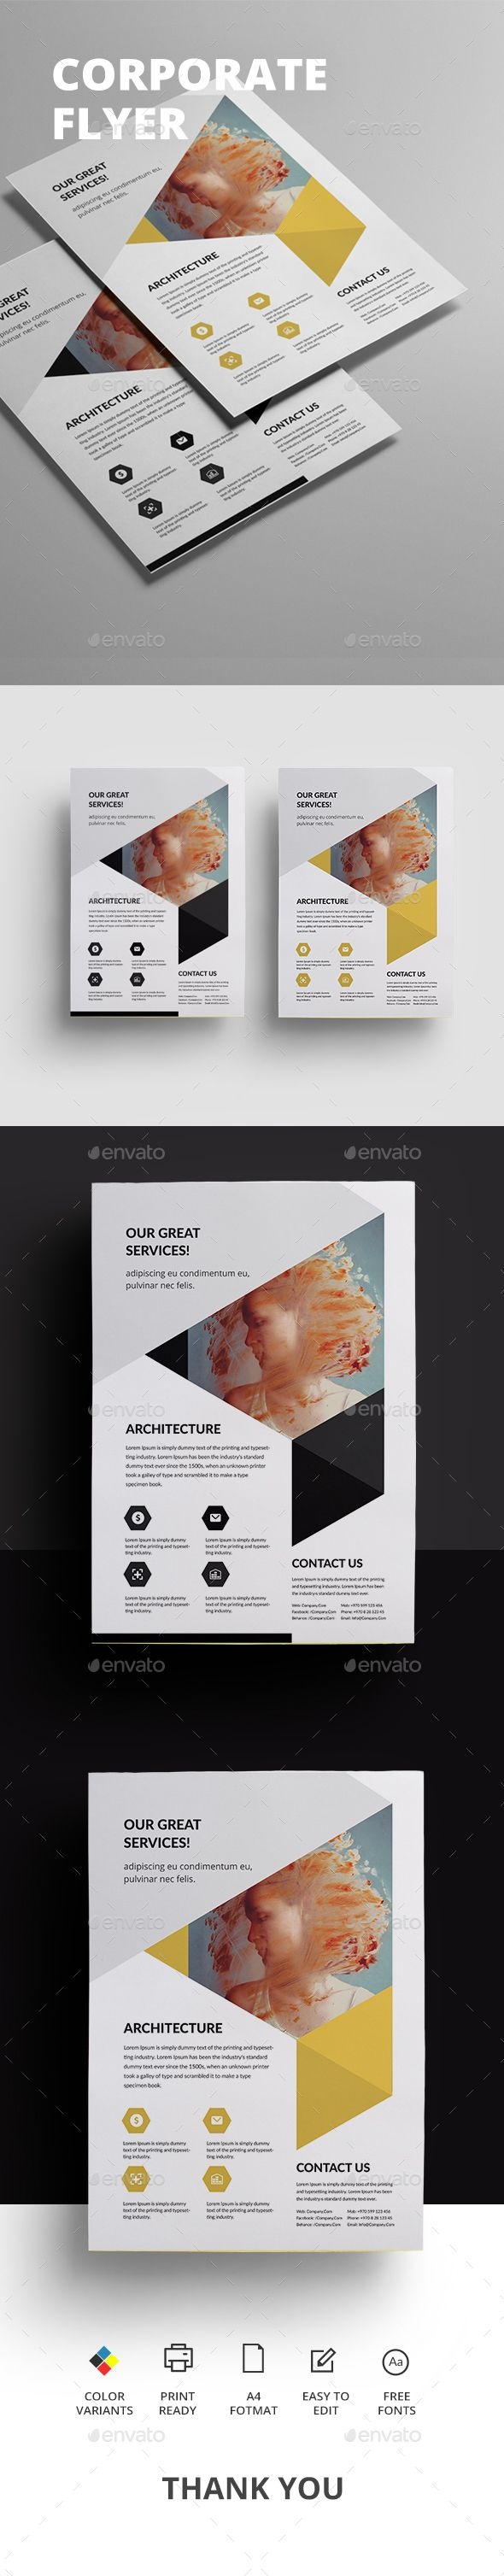 Corporate Flyer — Photoshop PSD #product #studio • Download ➝ graphicriver...